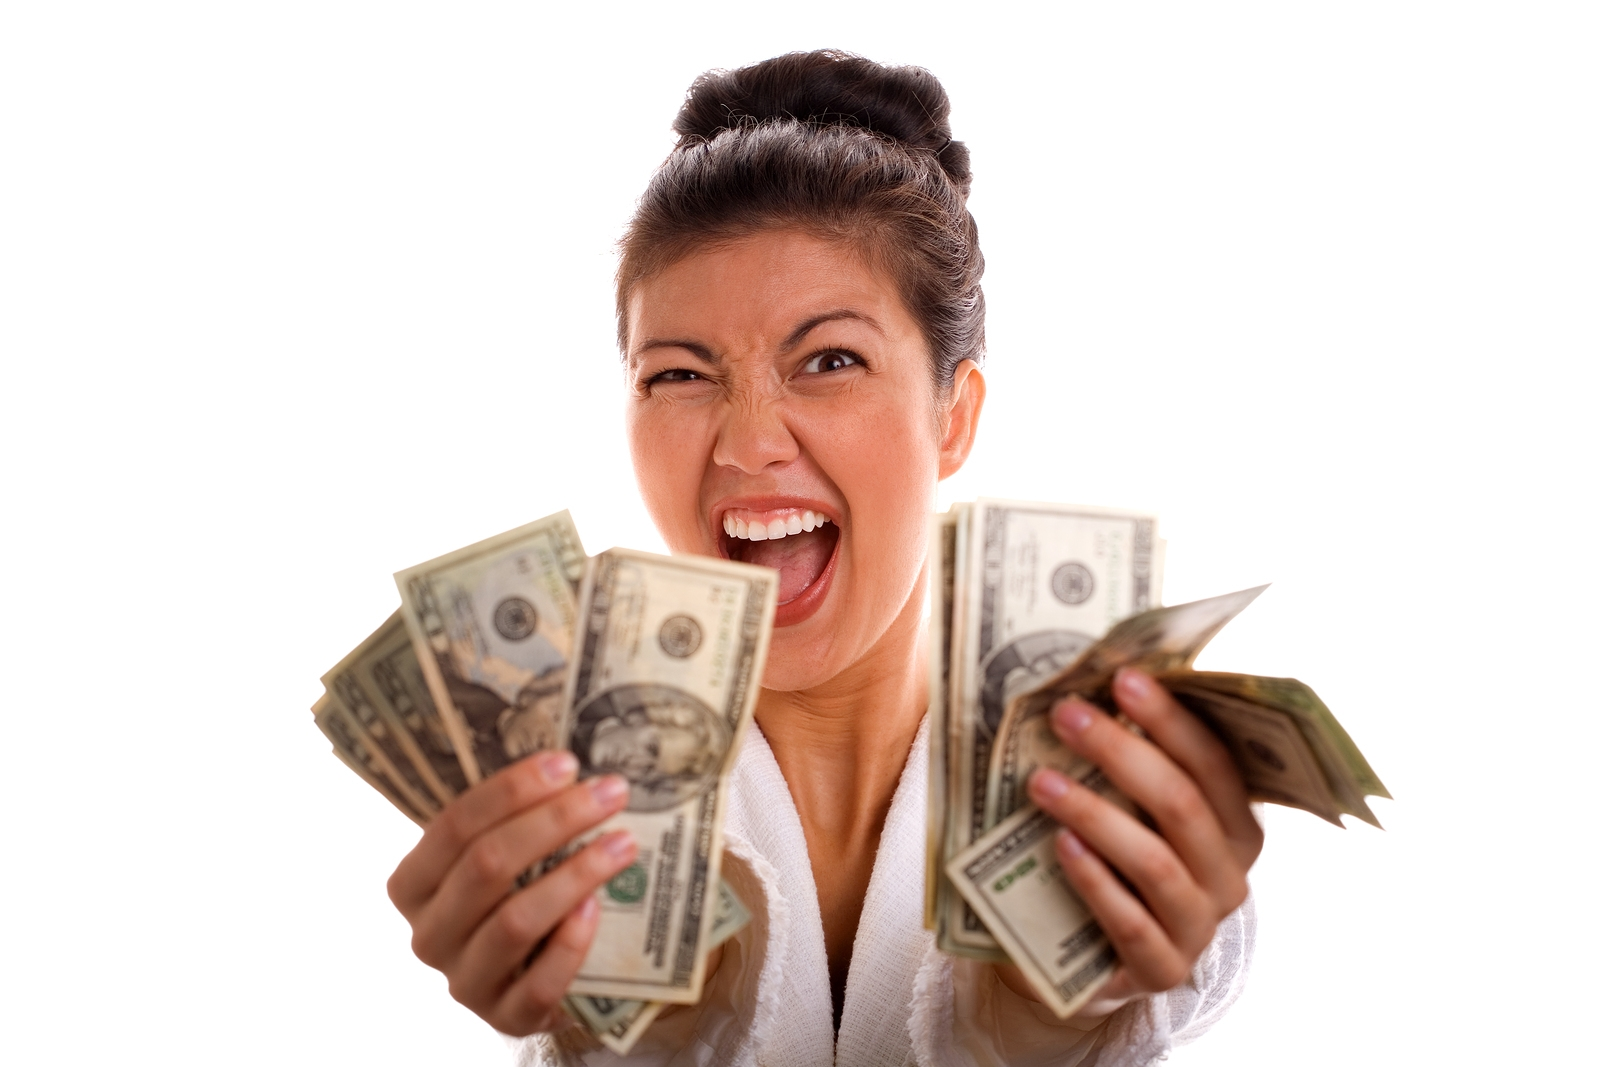 http://2.bp.blogspot.com/-xnC3Tf1B86Y/Tim2CrewU9I/AAAAAAAAAEw/bY2gJmPV2qI/s1600/bigstockphoto_excited_woman_holding_cash_2246039_hh1k.jpg